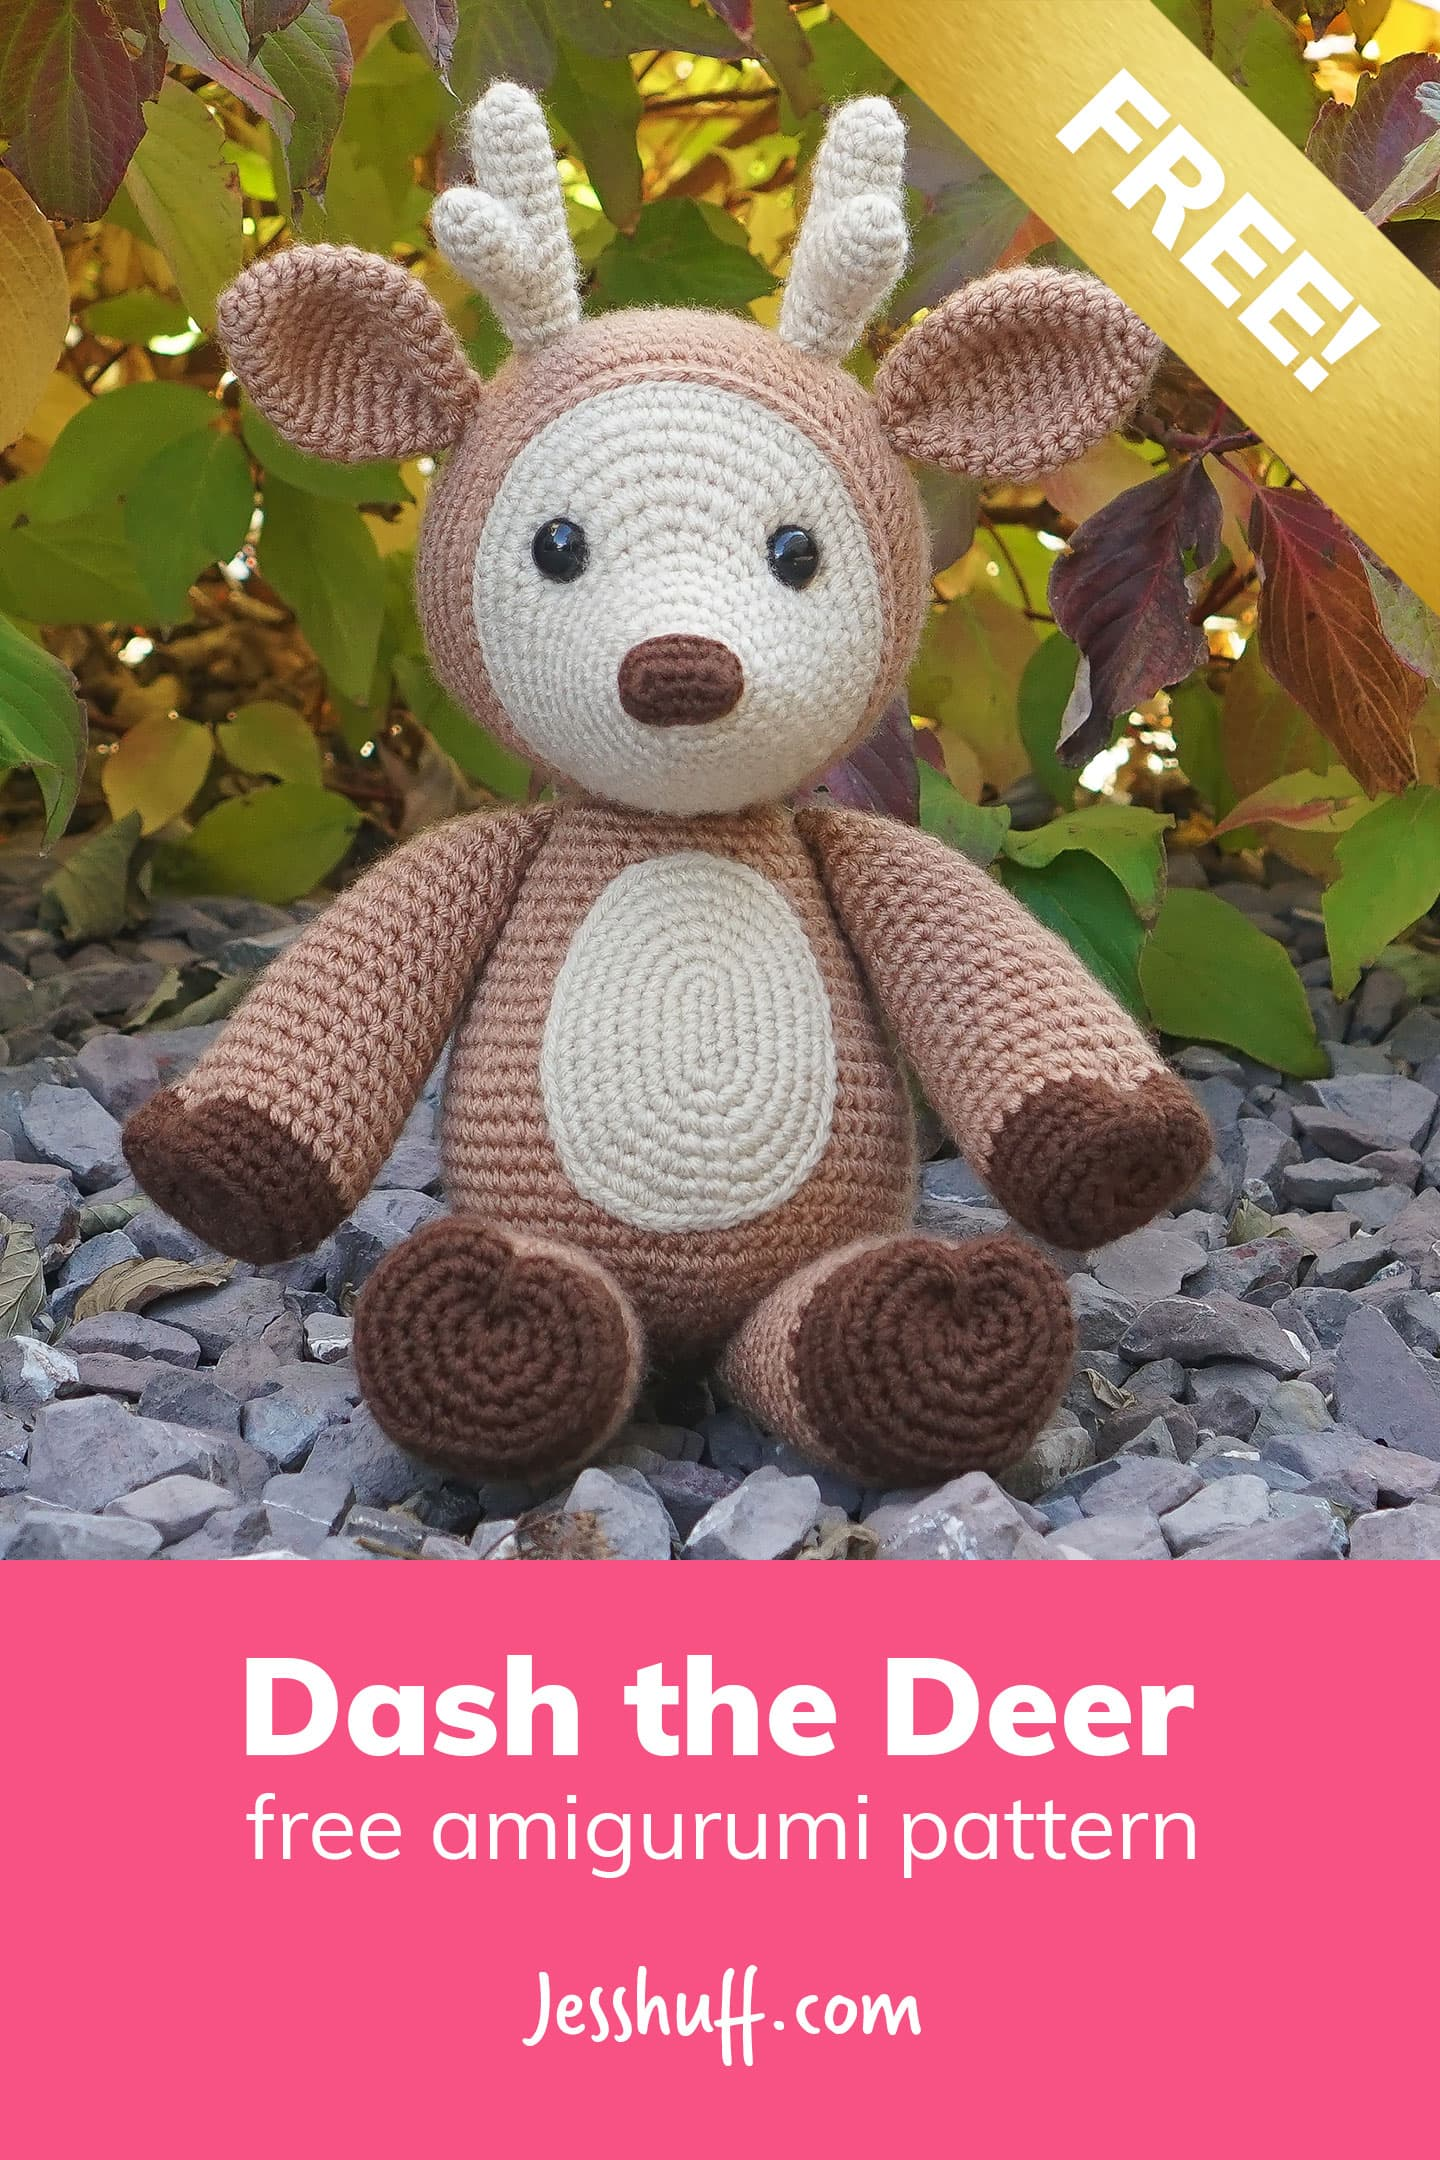 How cute is this deer pattern? I can\'t believe it\'s free!